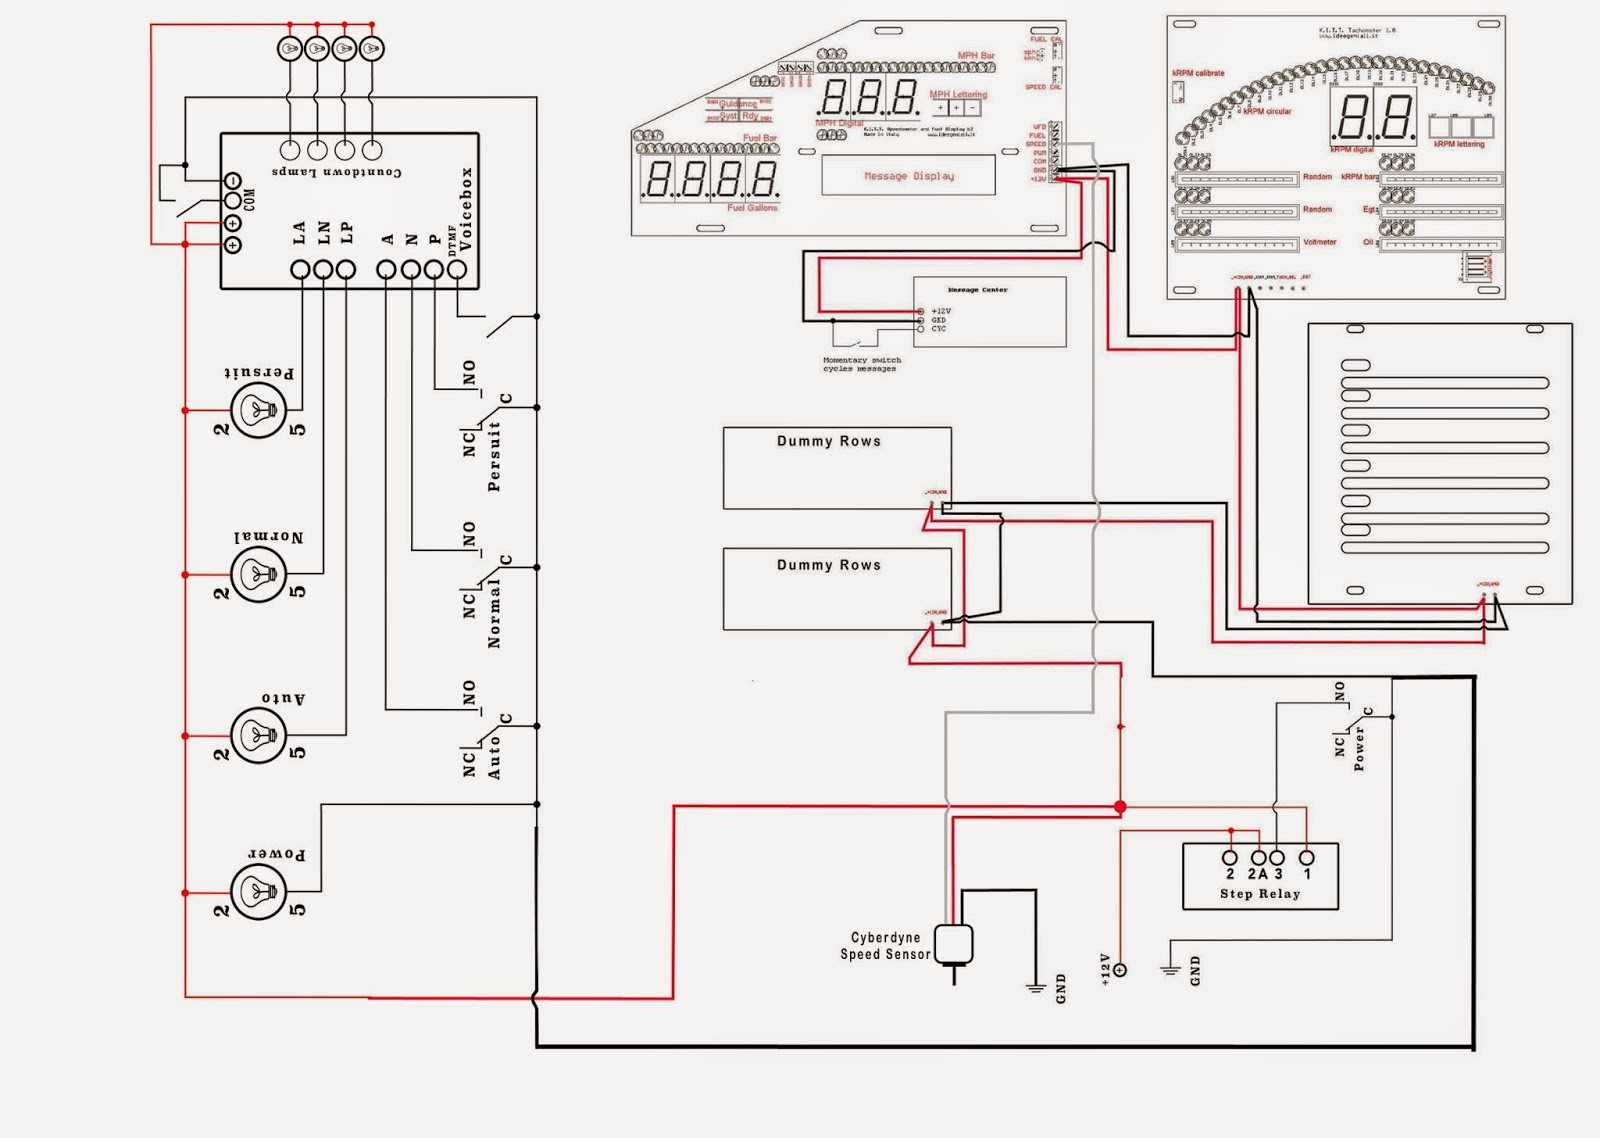 My Knight Rider 2000 project: Diagrams And Schematics